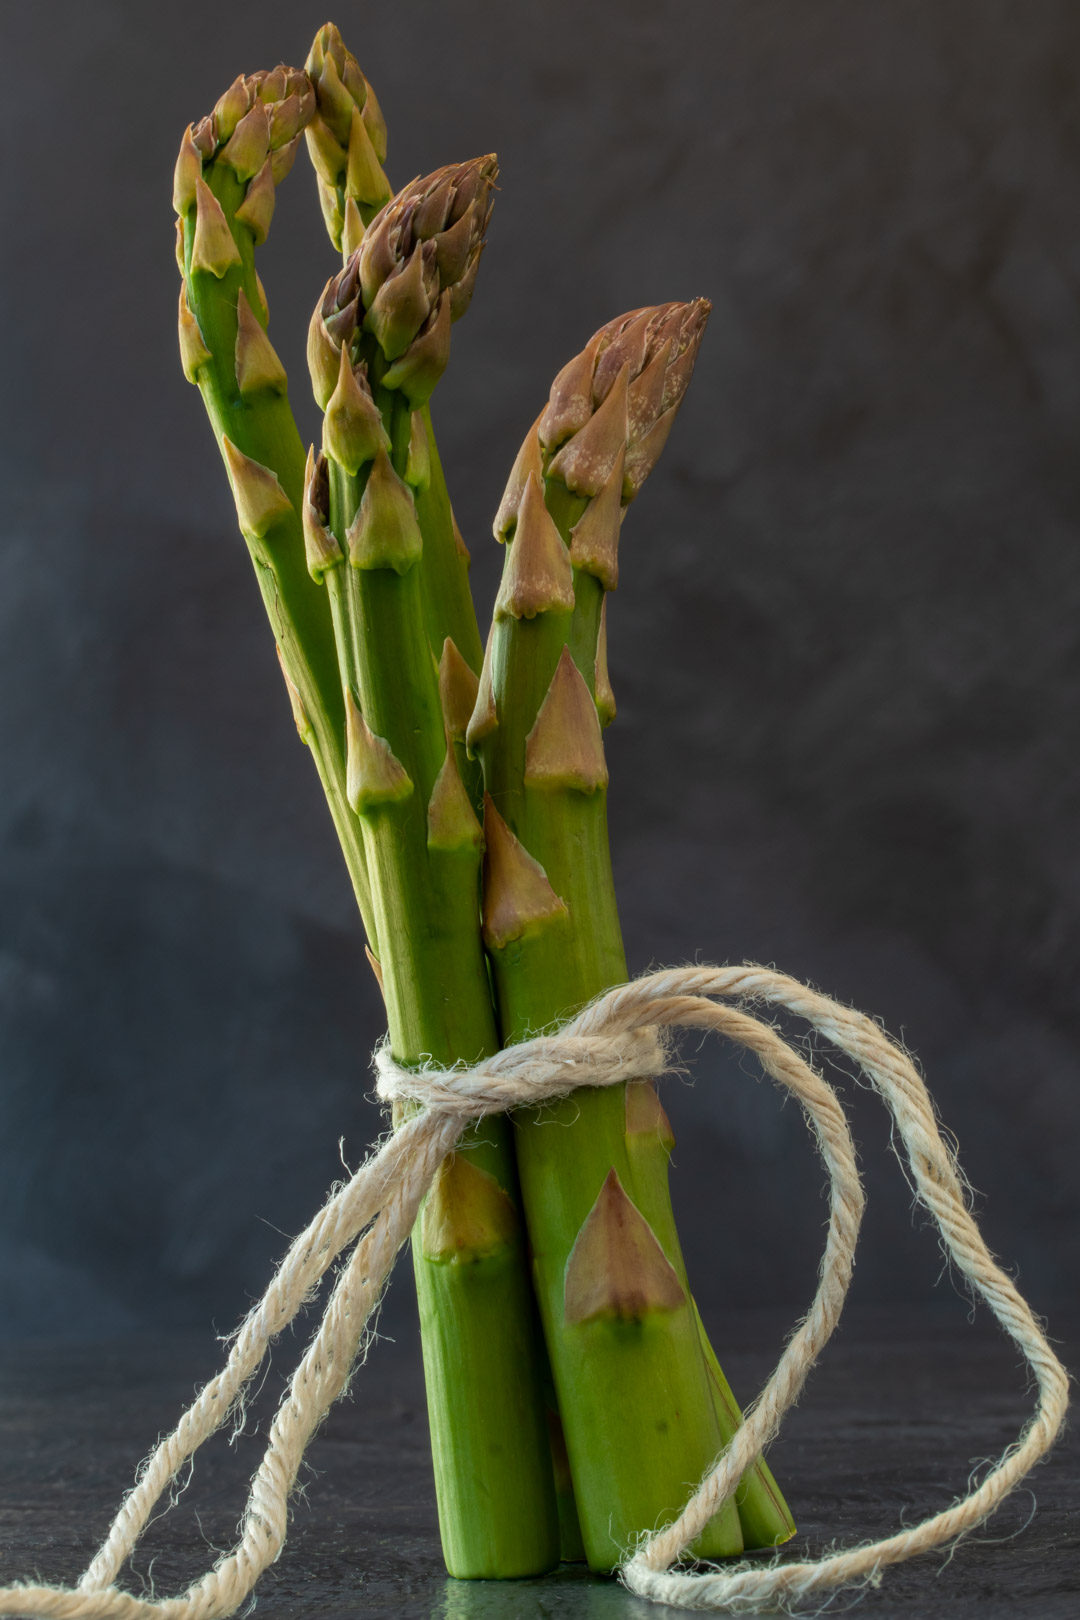 asparagus & lemon tart: asparagus still life with grey background